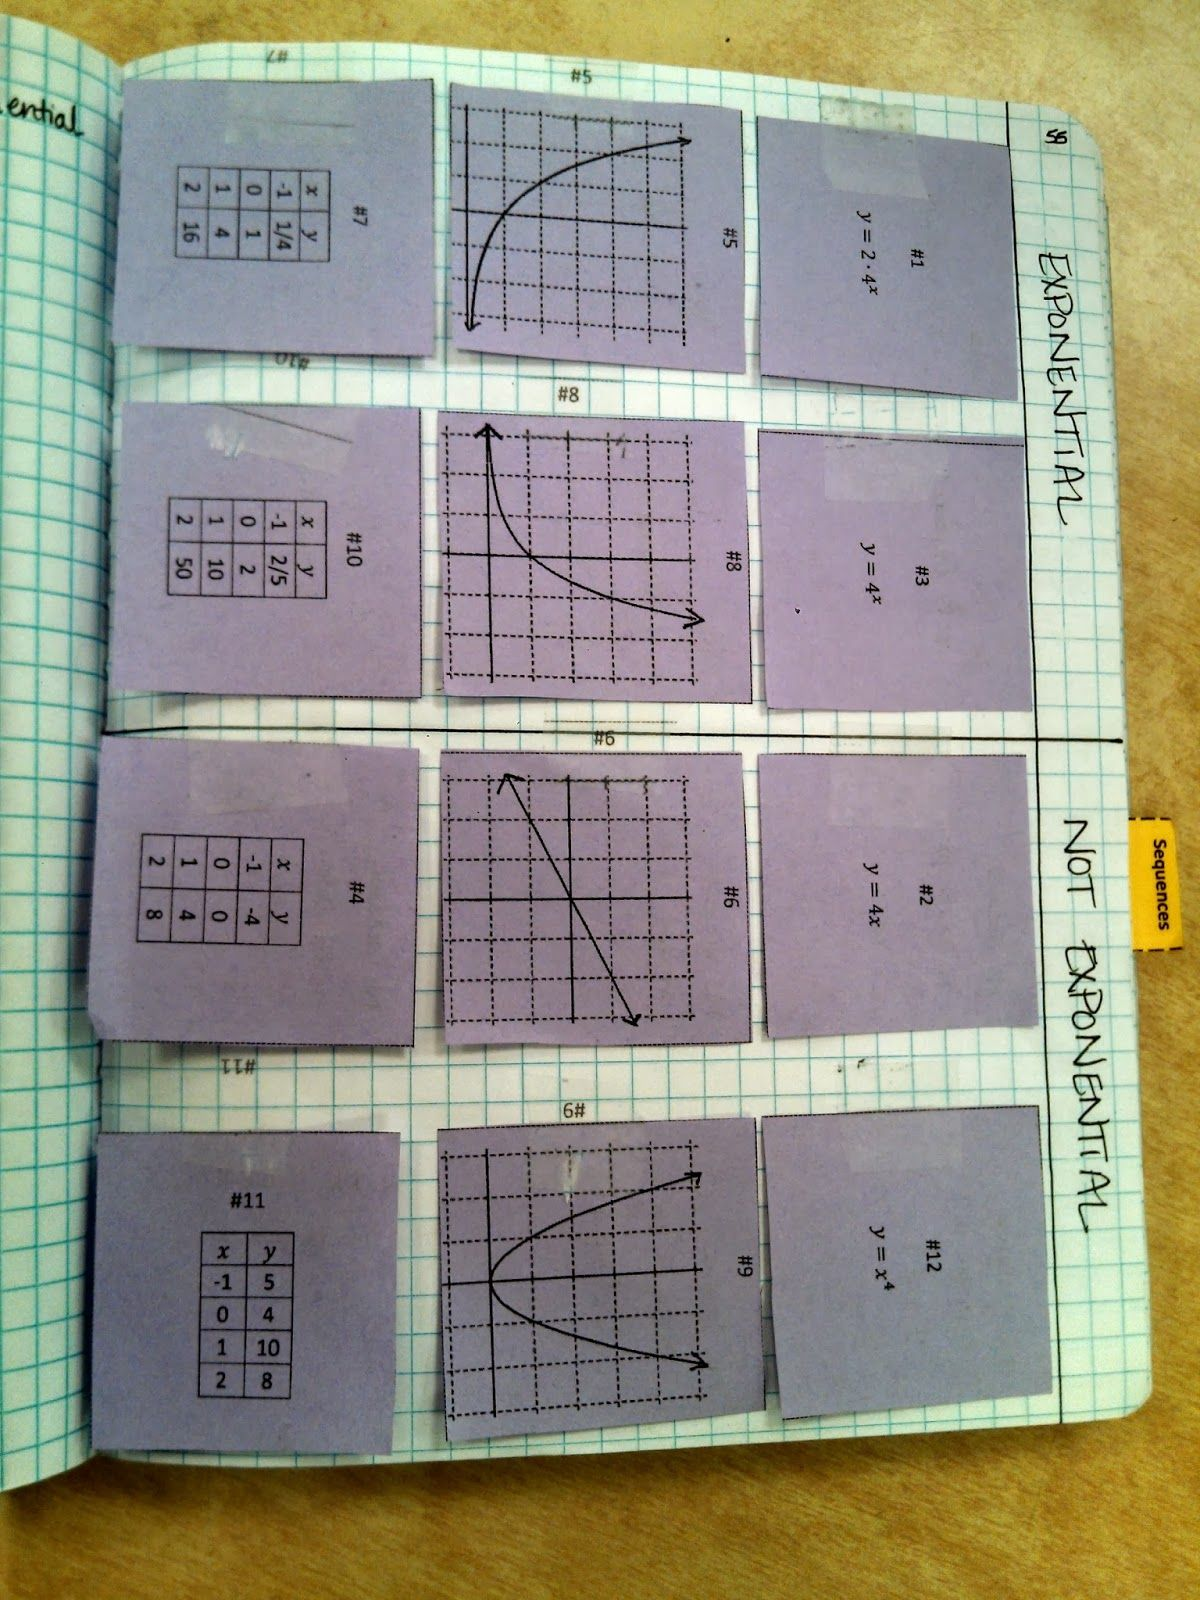 Card Sort For Exponential Functions Plus Other Materials And Downloads For The Lesson